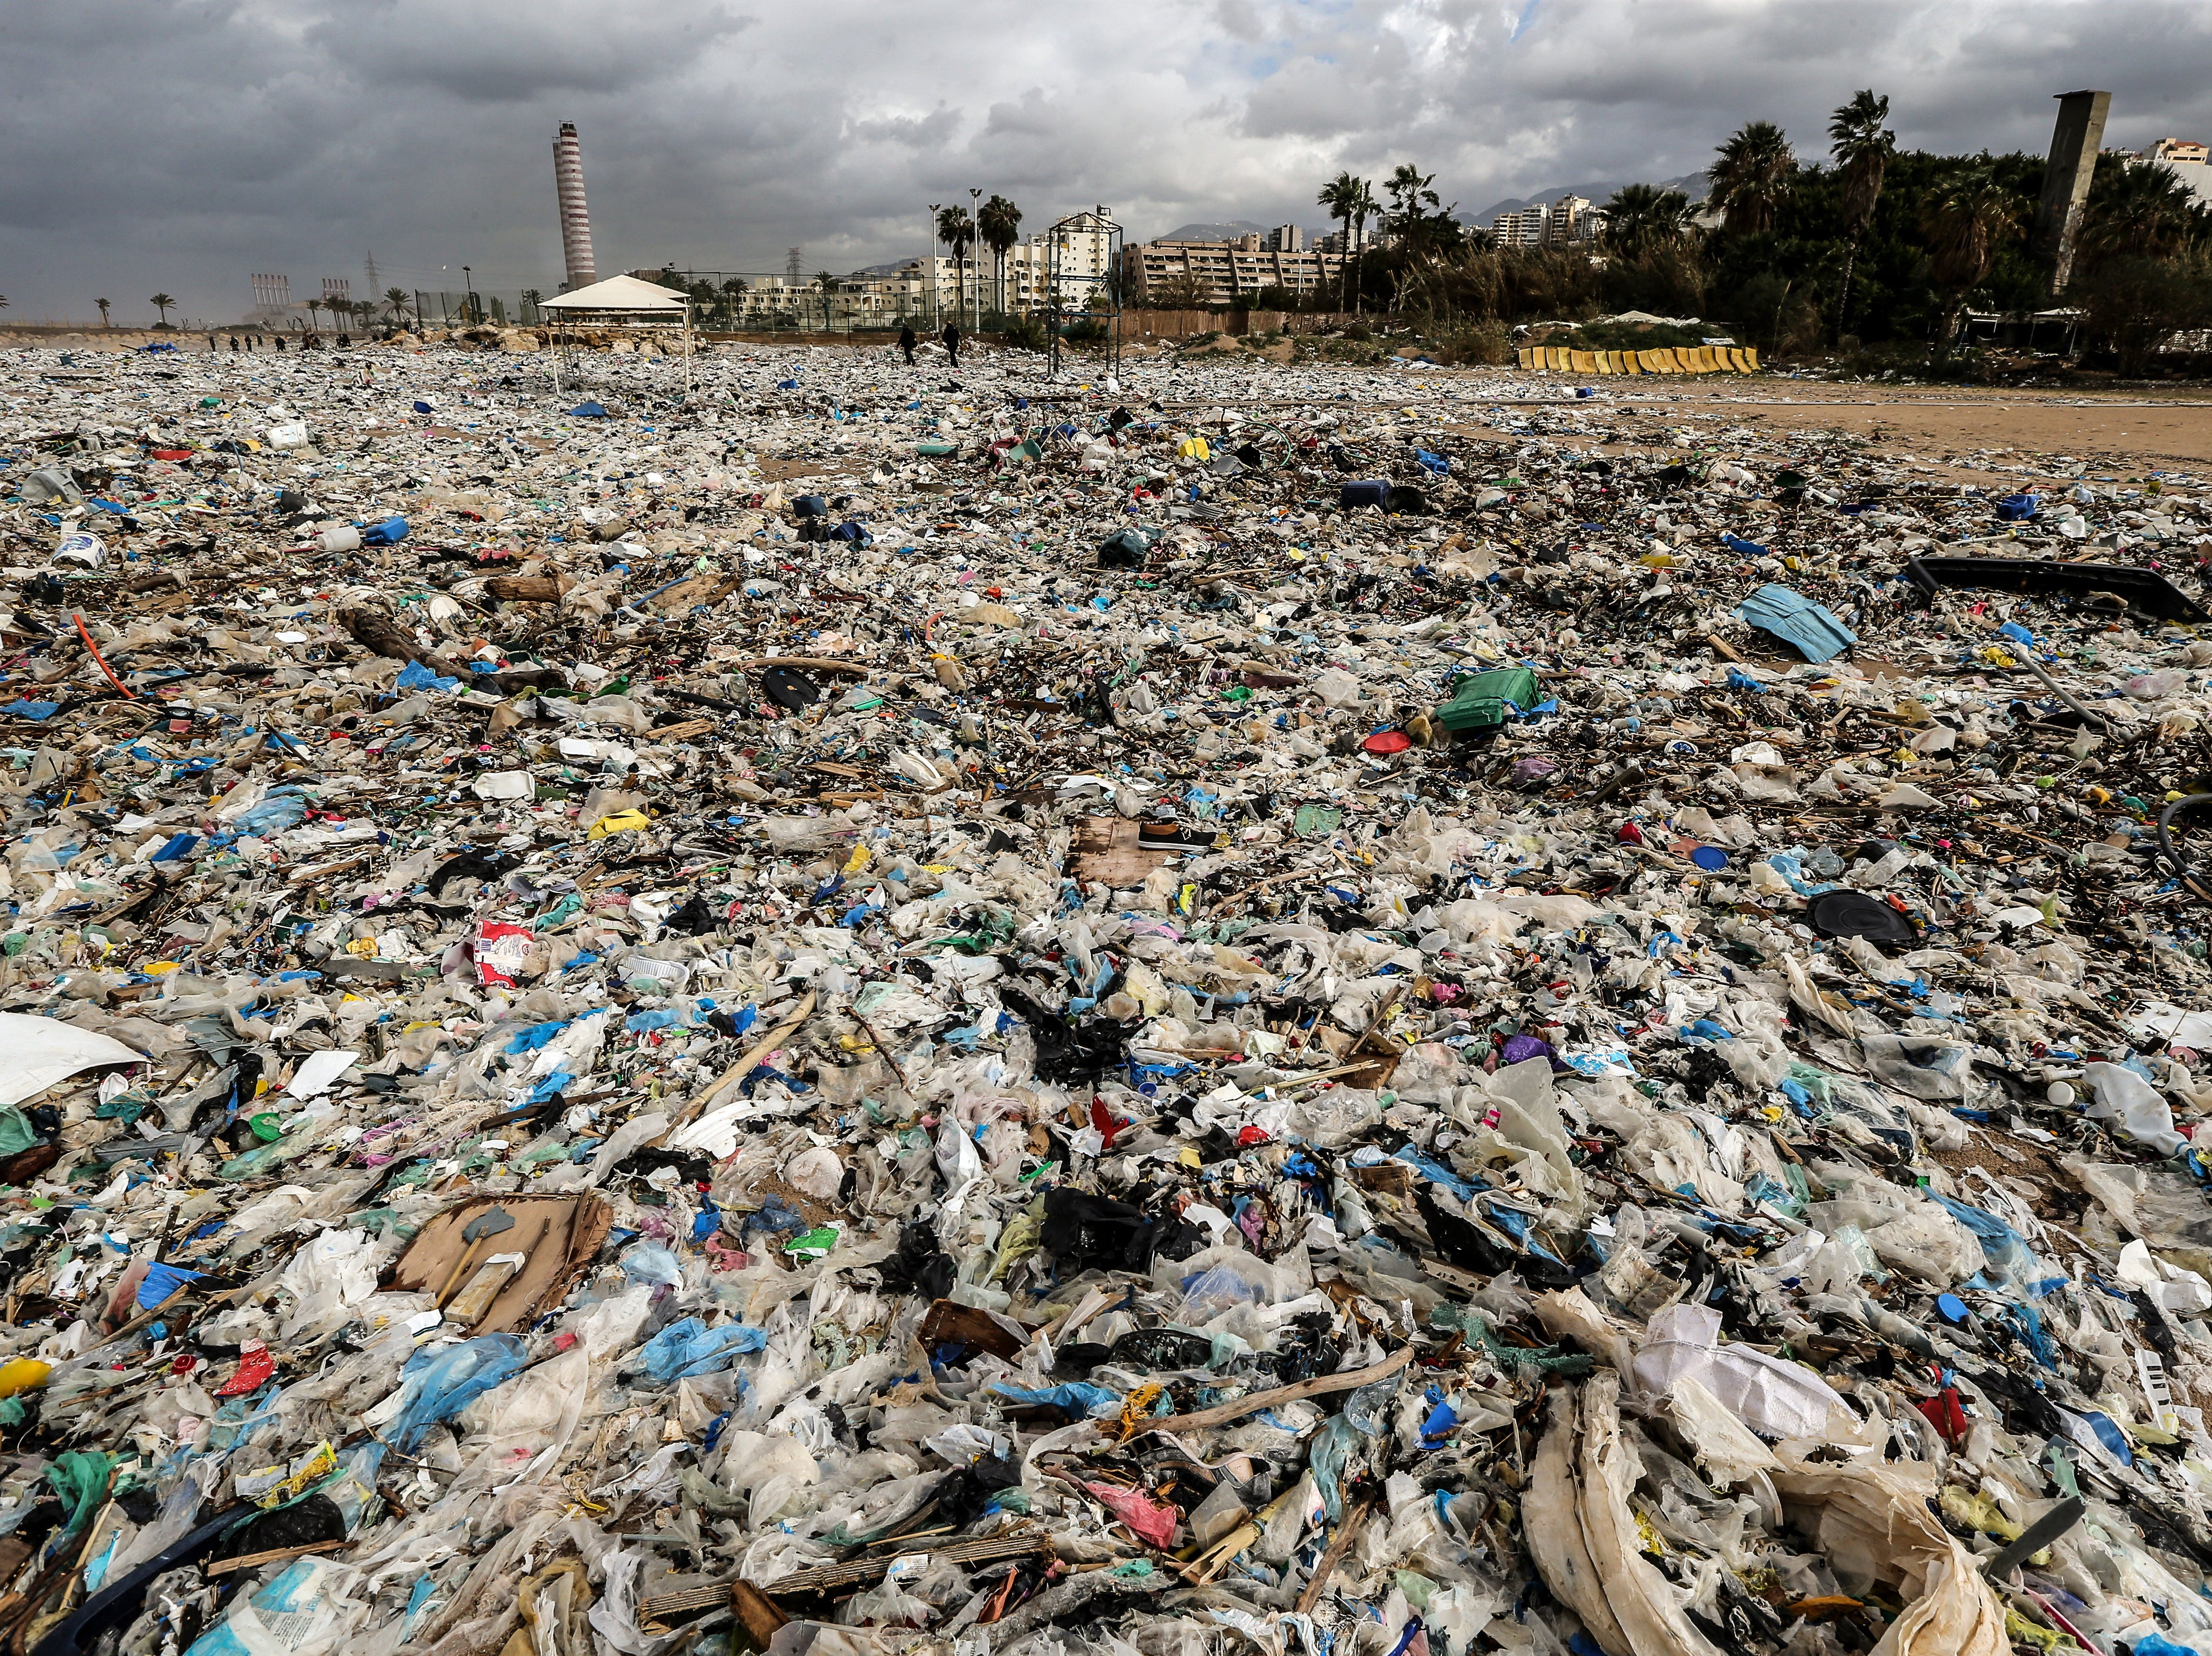 Jan. 23, 2108: Garbage is washed on the shore a day after a winter storm hit the Zouk Musbeh area, north of Beirut, Lebanon. Lebanon is going through a waste crisis amid a disagreement between the Ministry of the Environment and civil society organizations on ways to resolve the issue.